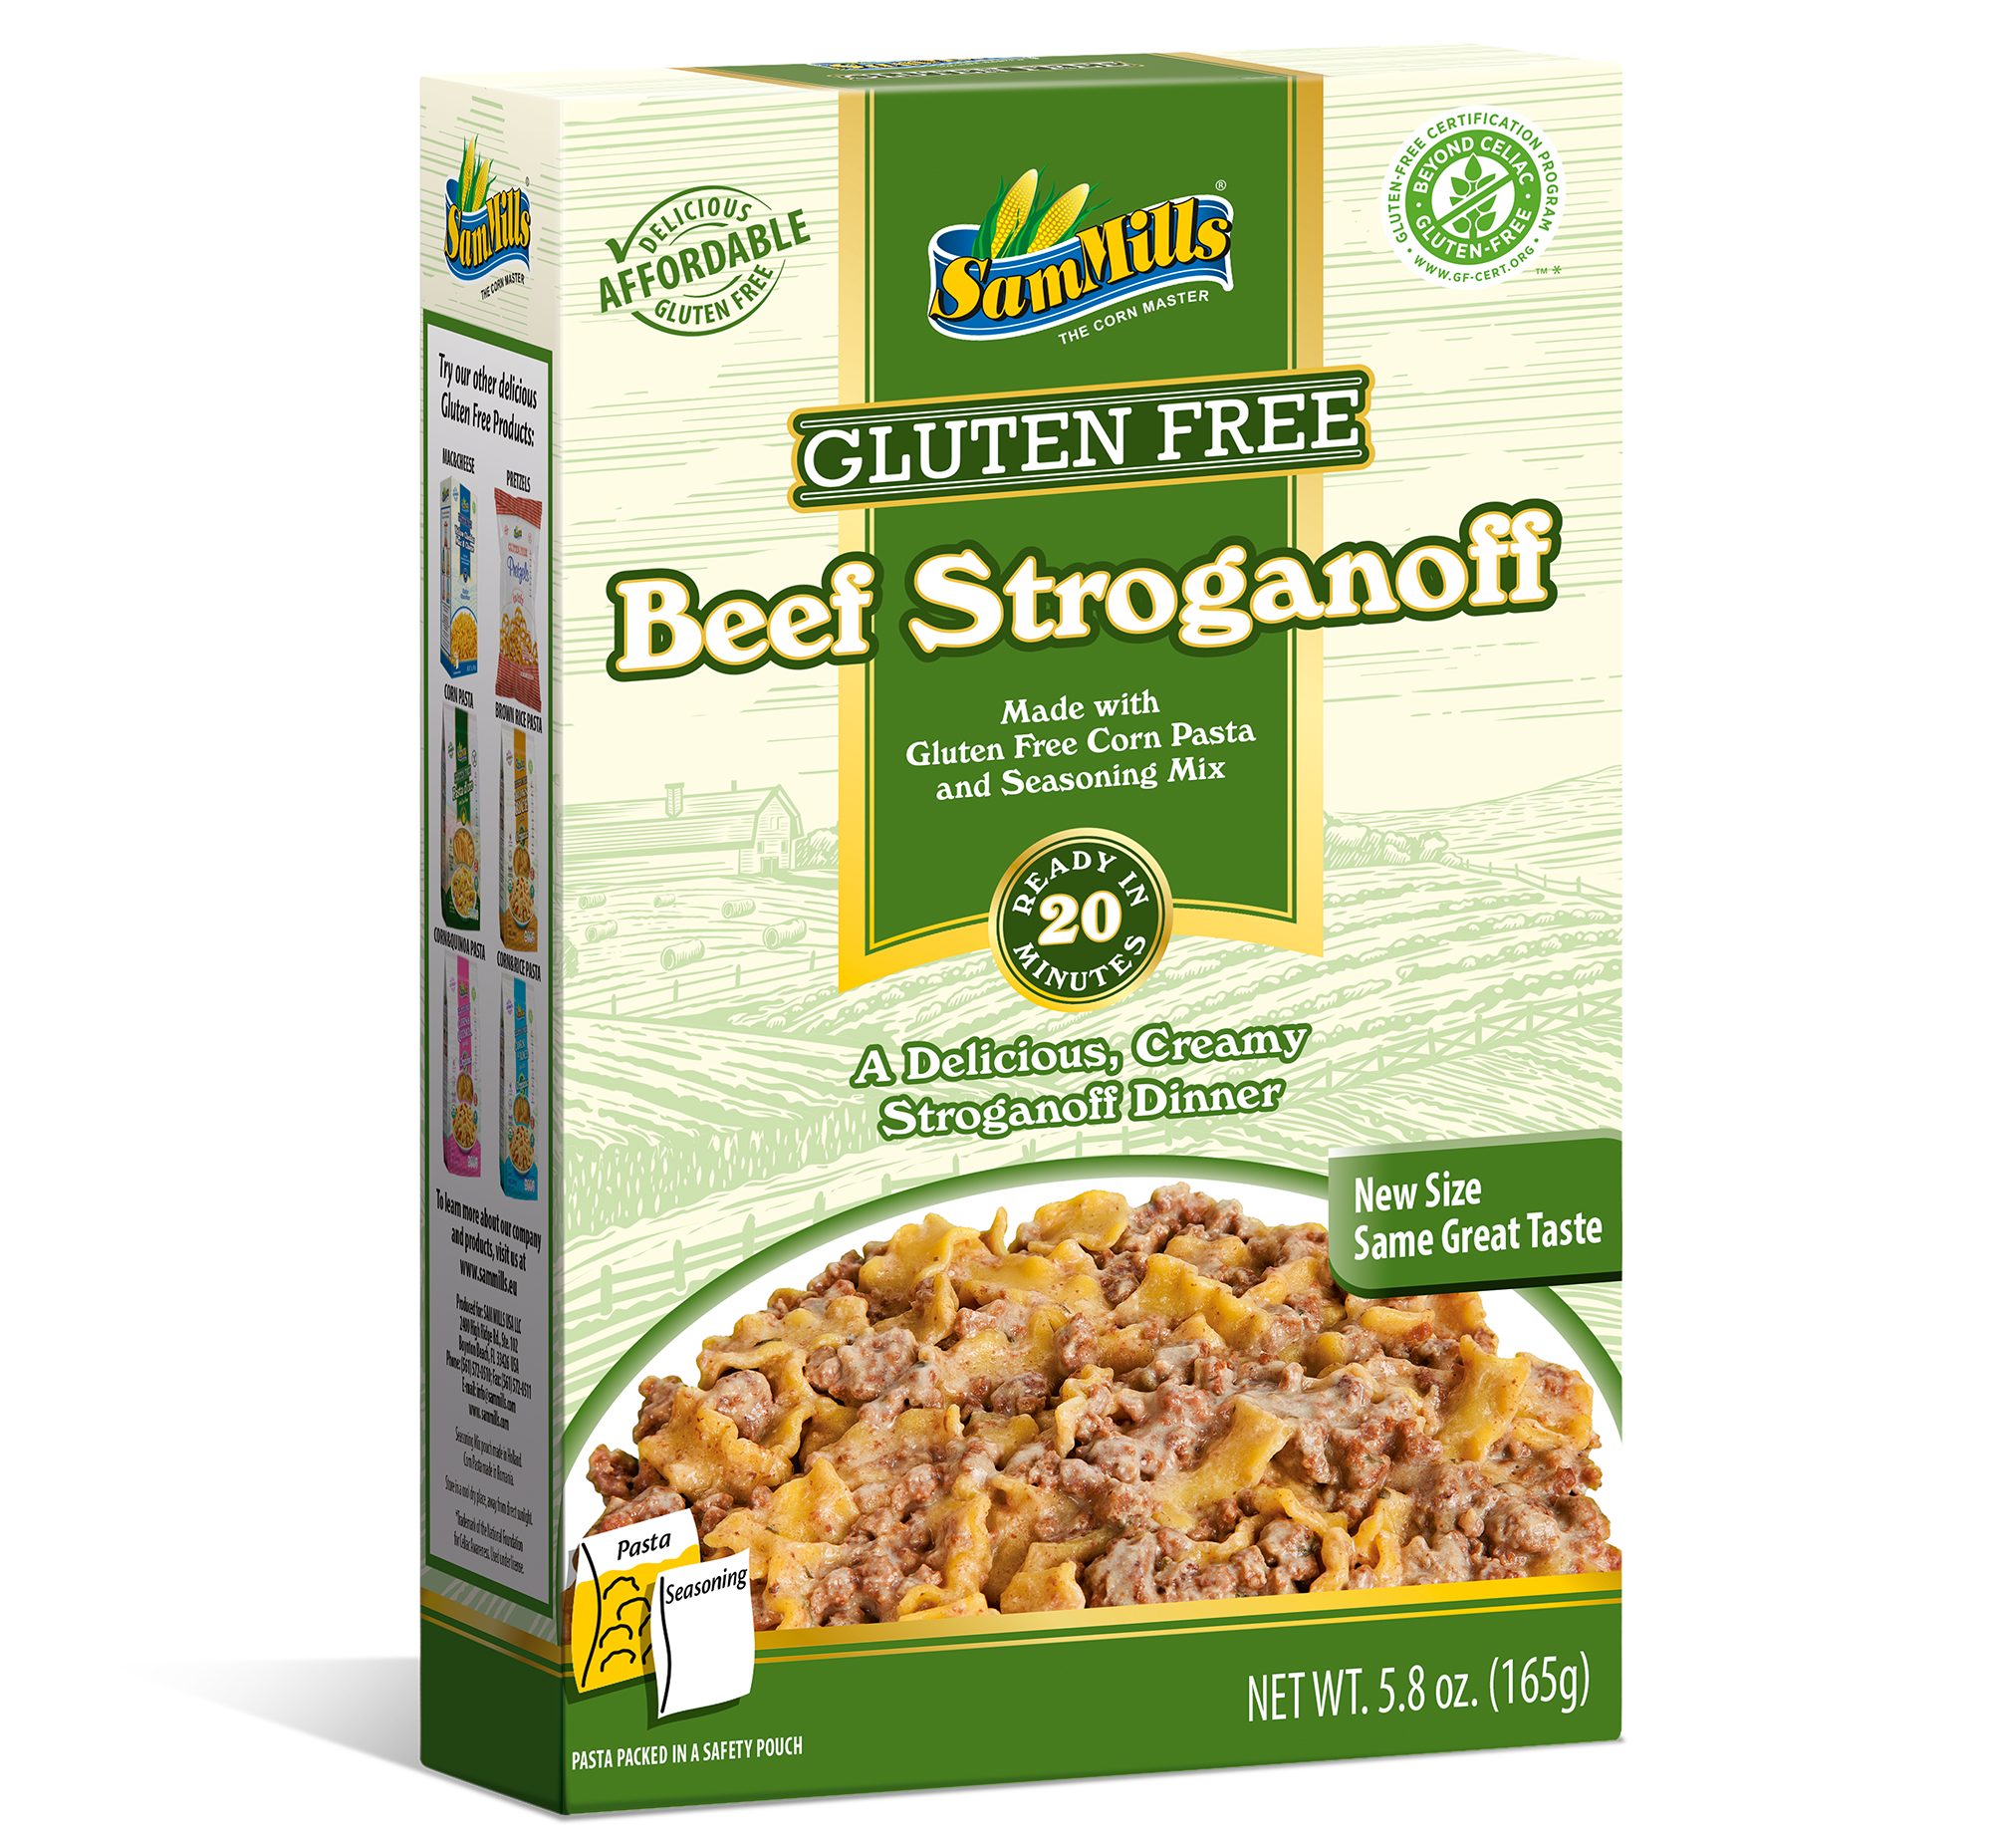 BeefStroganoff Products Line